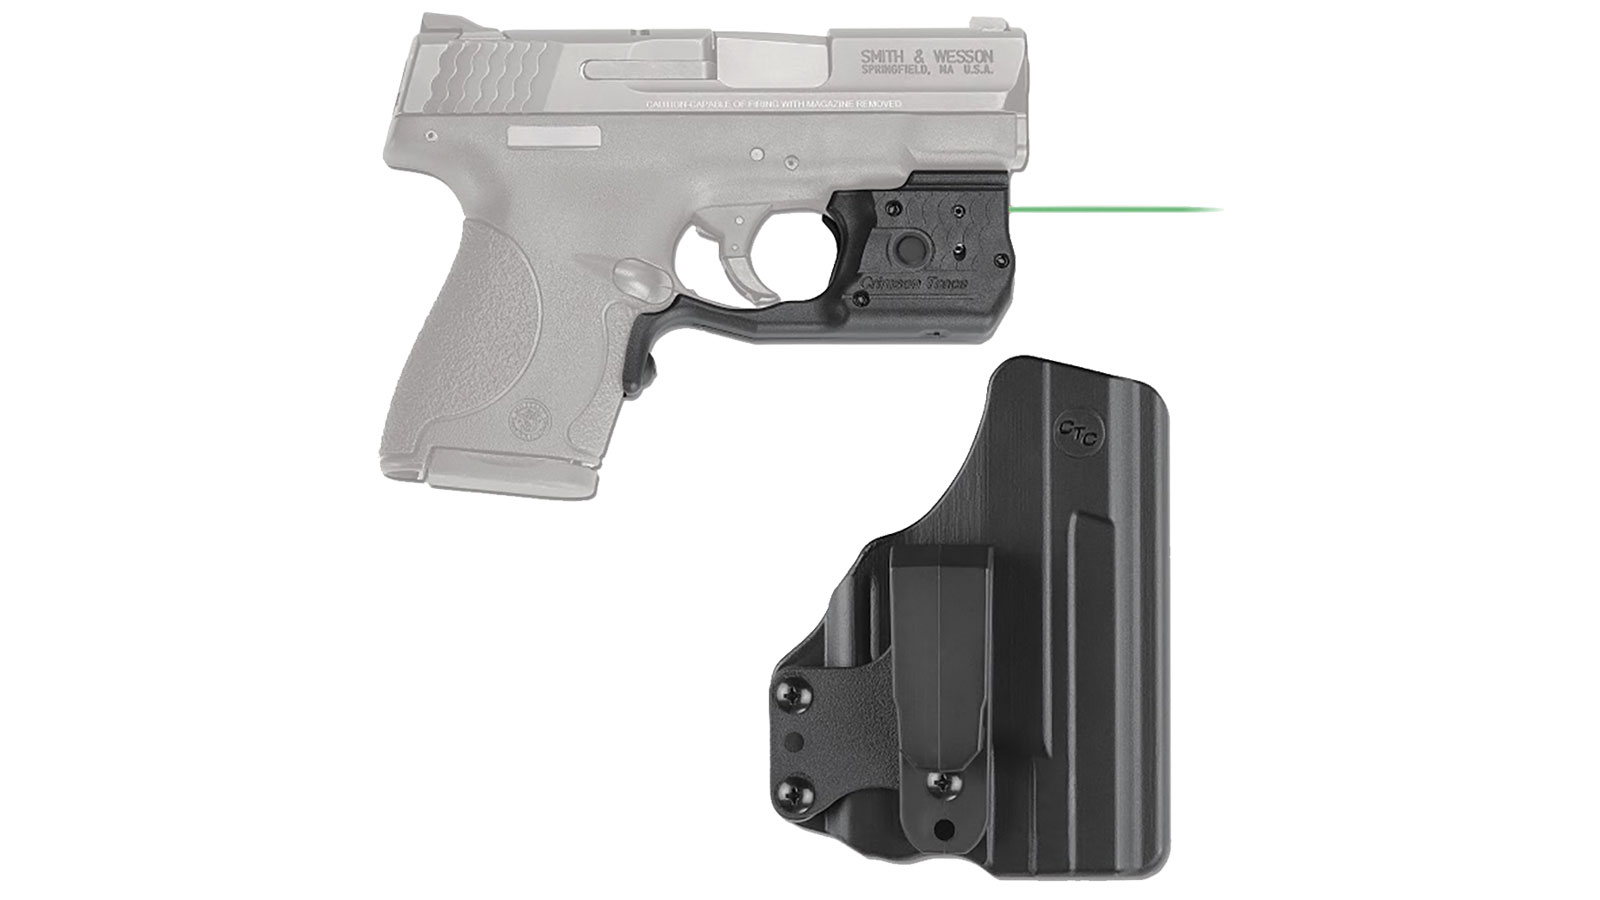 Crimson Trace LL808GHBT Laserguard Pro  with White LED Light|Green Laser S&W M&P Shield 45 Trigger Guard